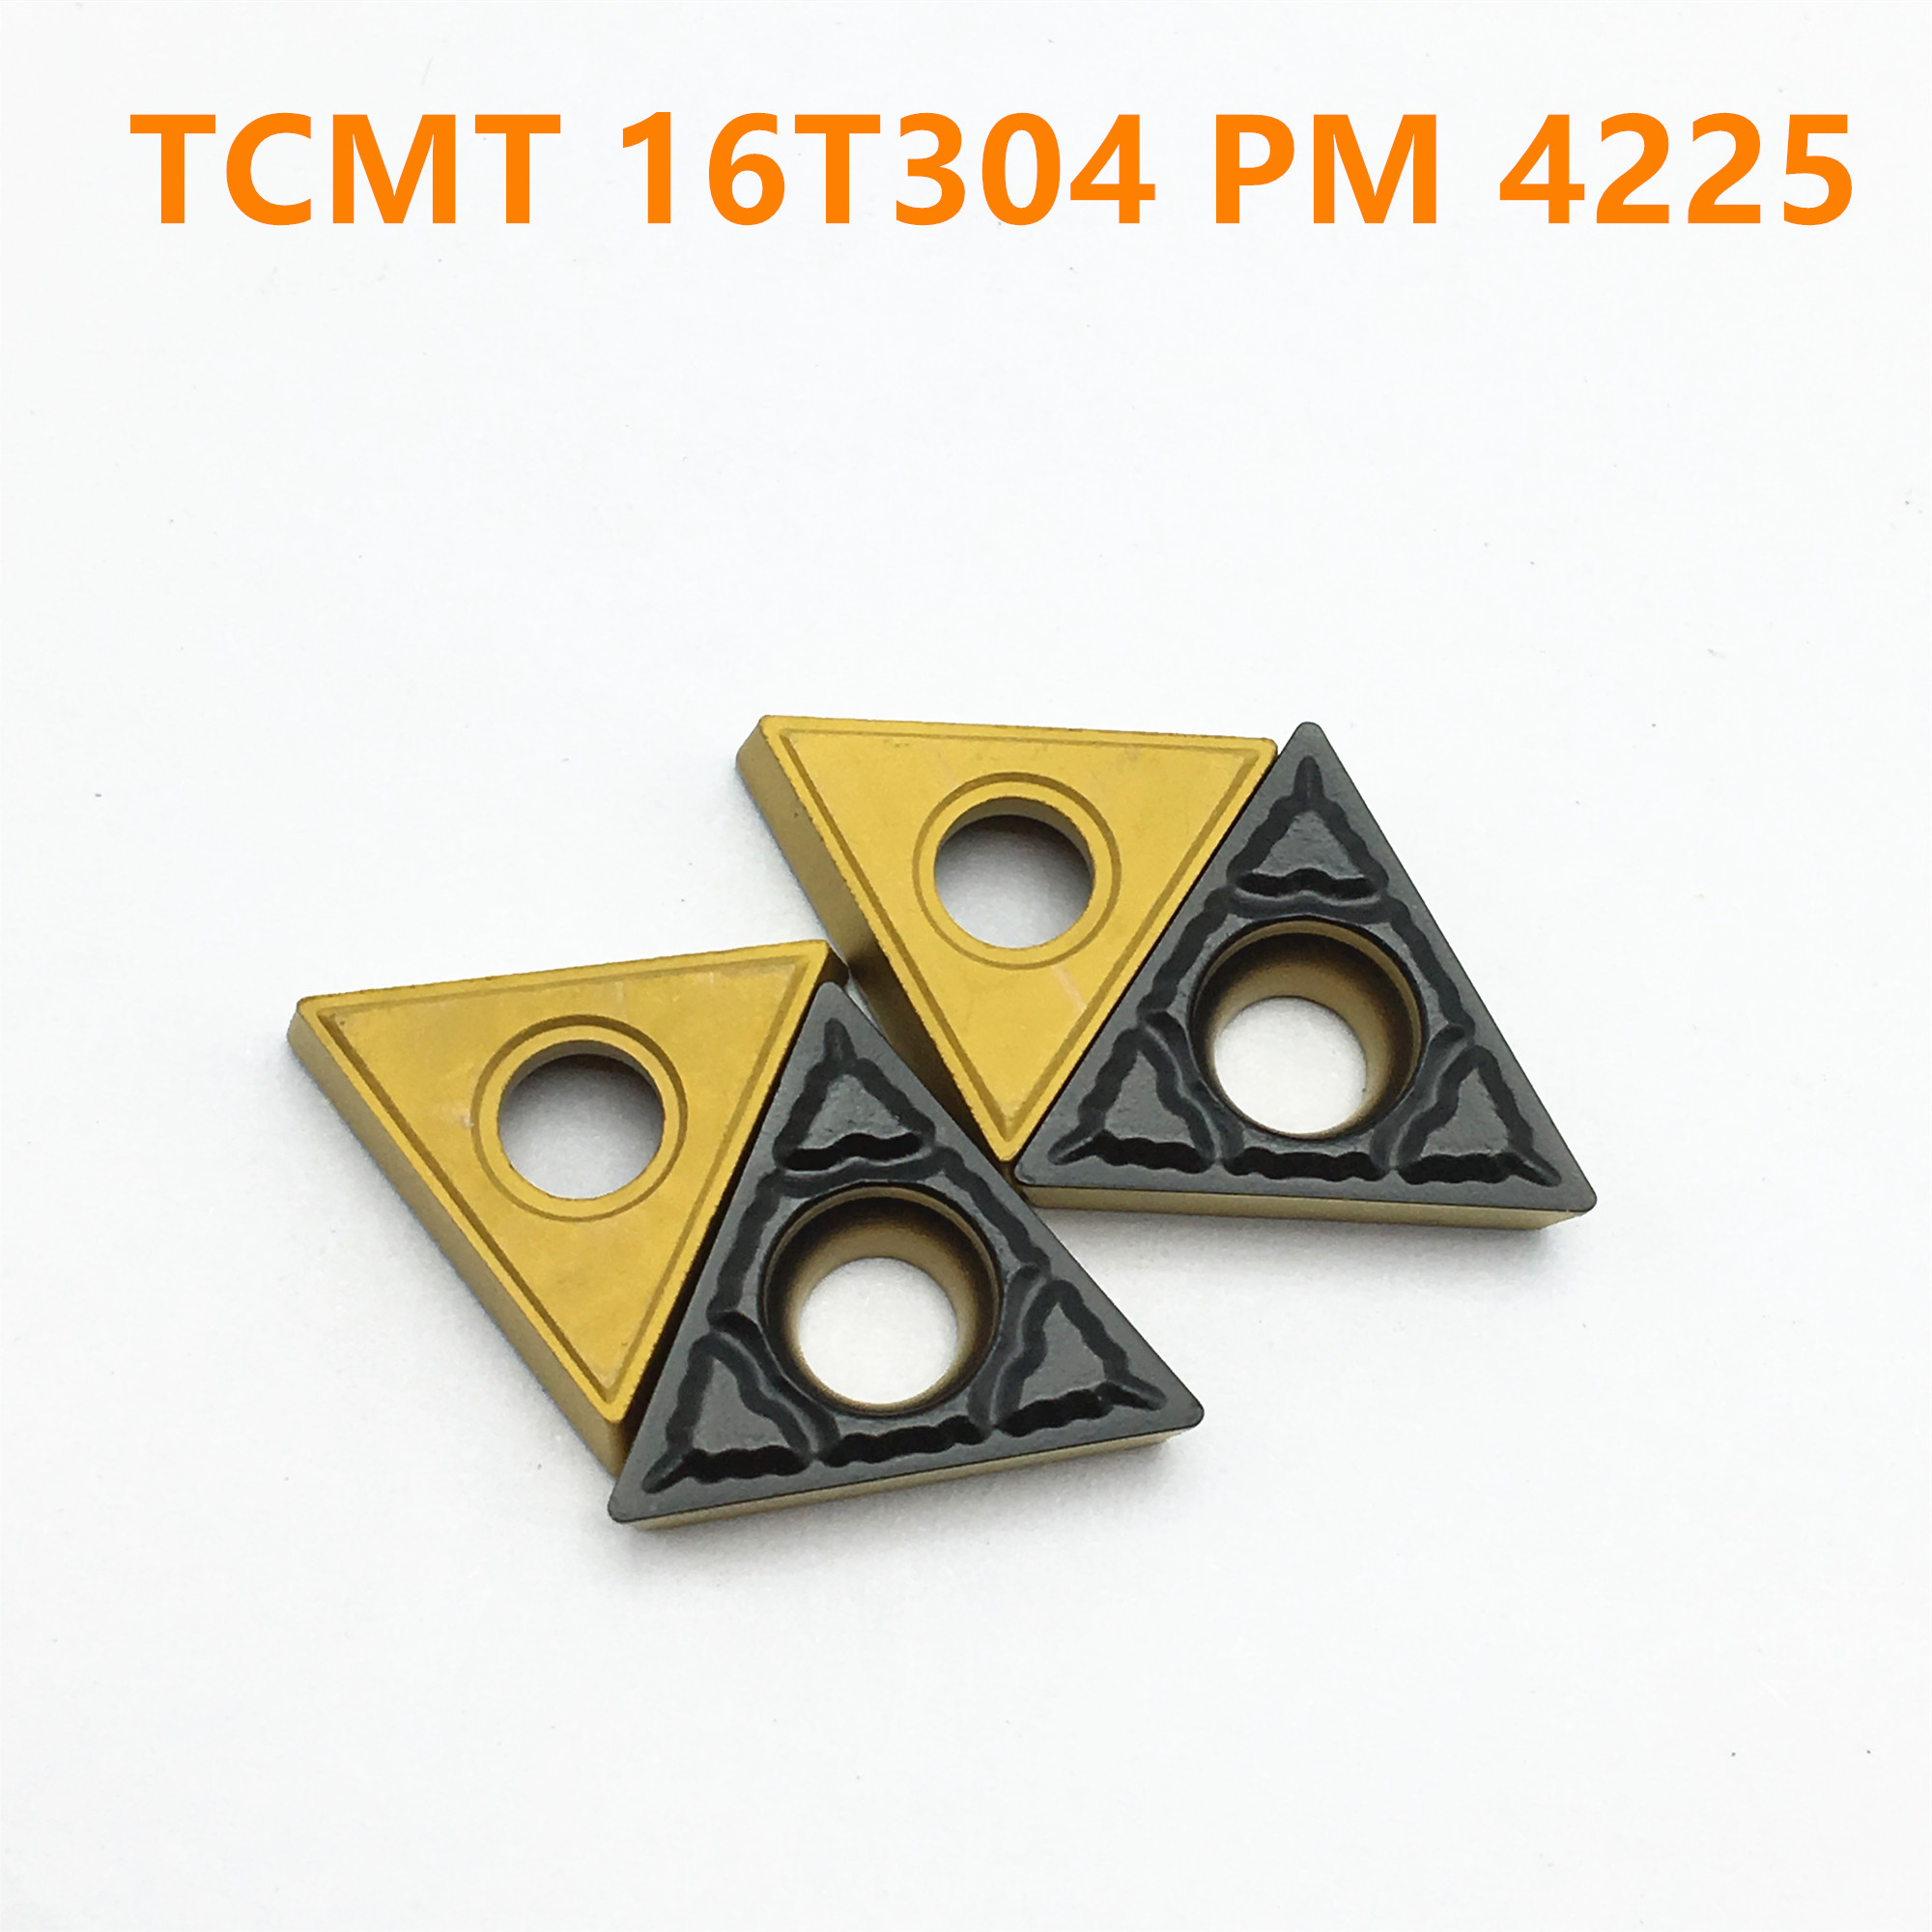 10pcs TCMT16T304 Carbide Inserts For Indexable Boring Bar Turning Tool Holder